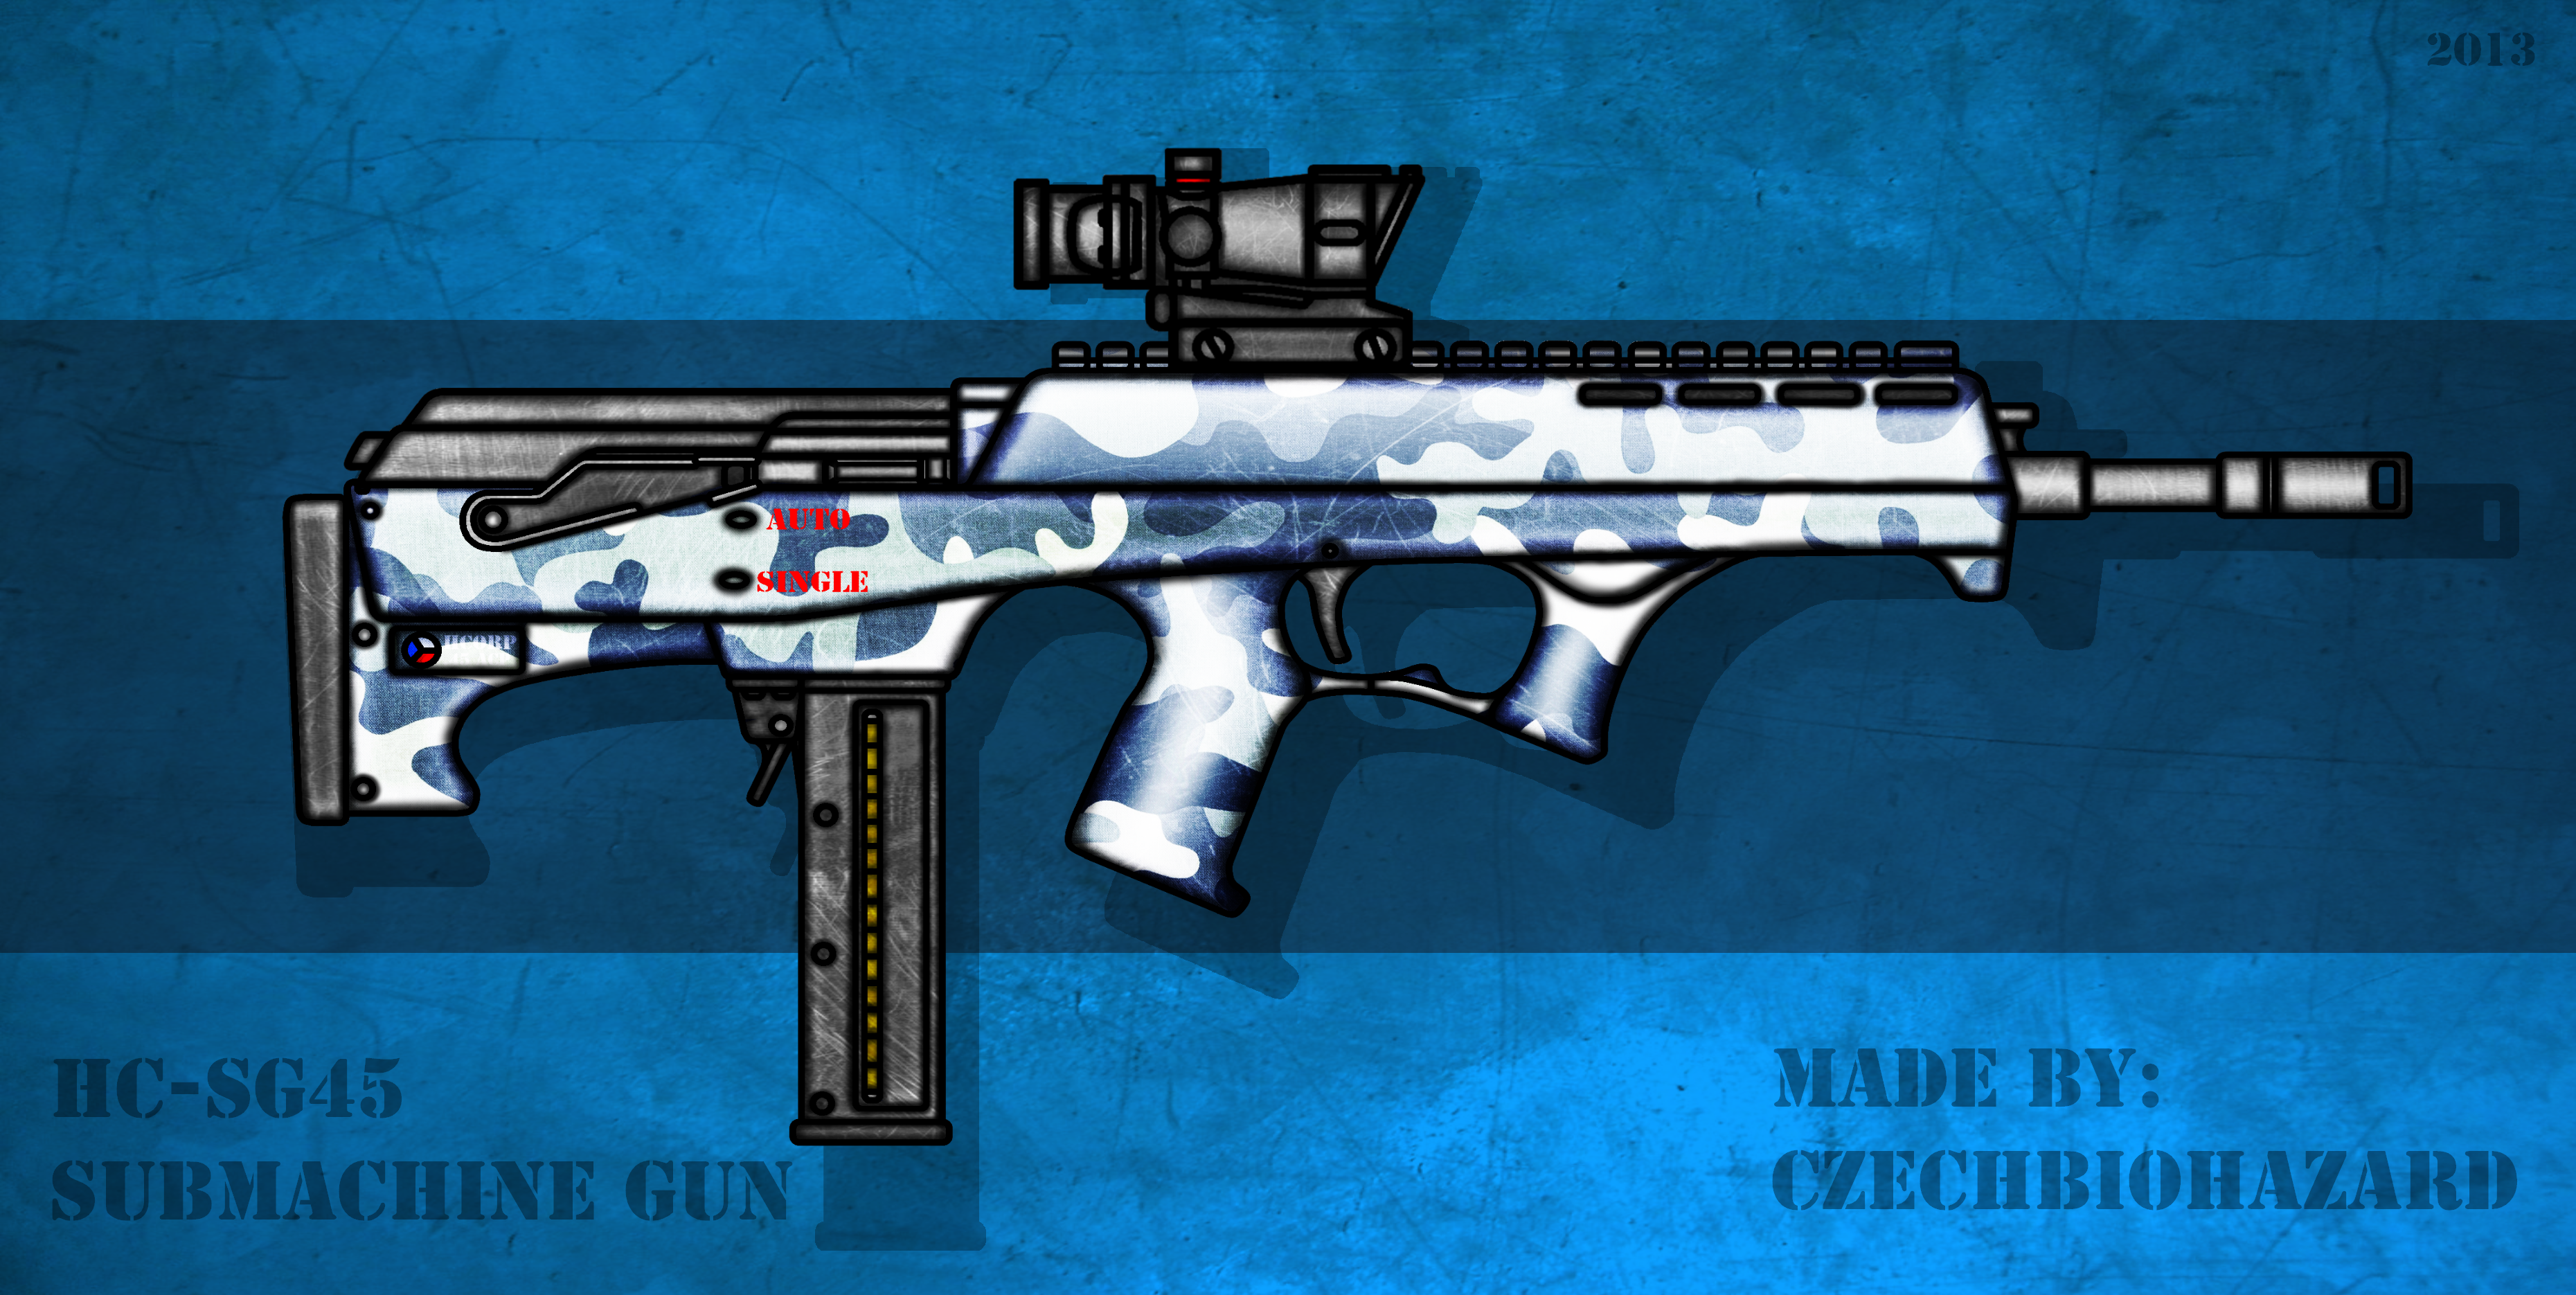 Fictional Firearm: HC-SG45 Submachine Gun by CzechBiohazard